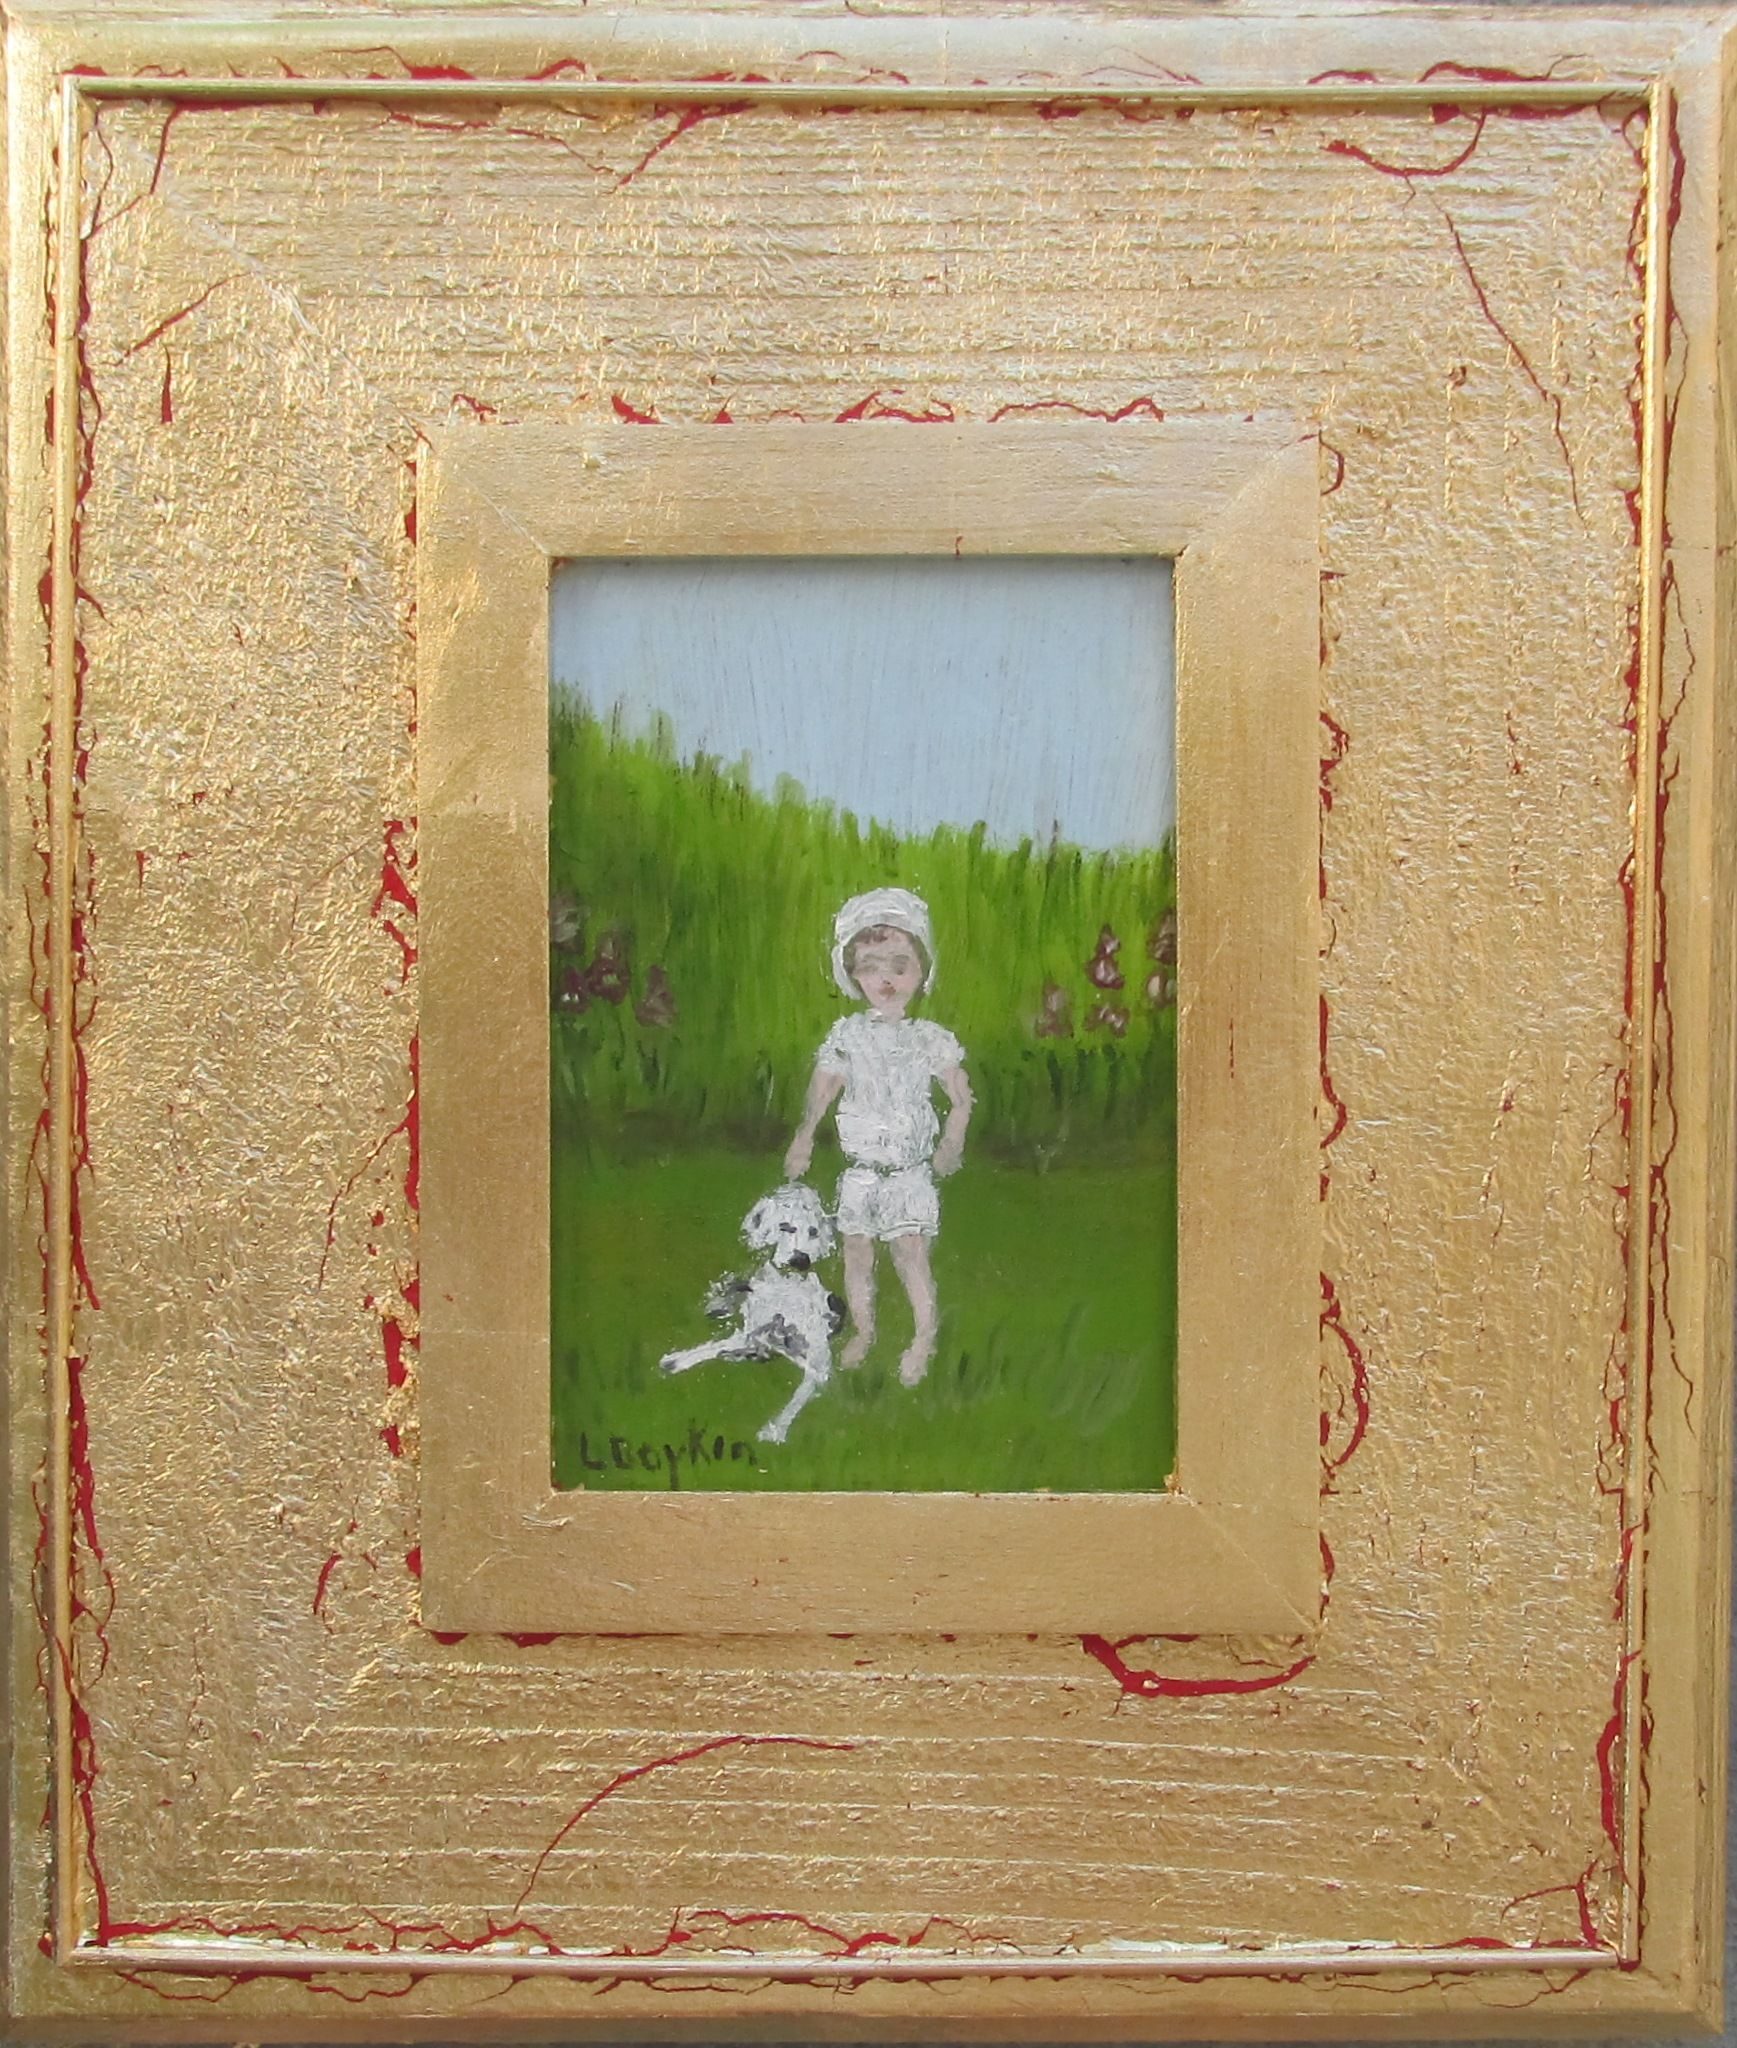 Best Friends An Oil Painting By L Boykin Painting Oil Painting Art